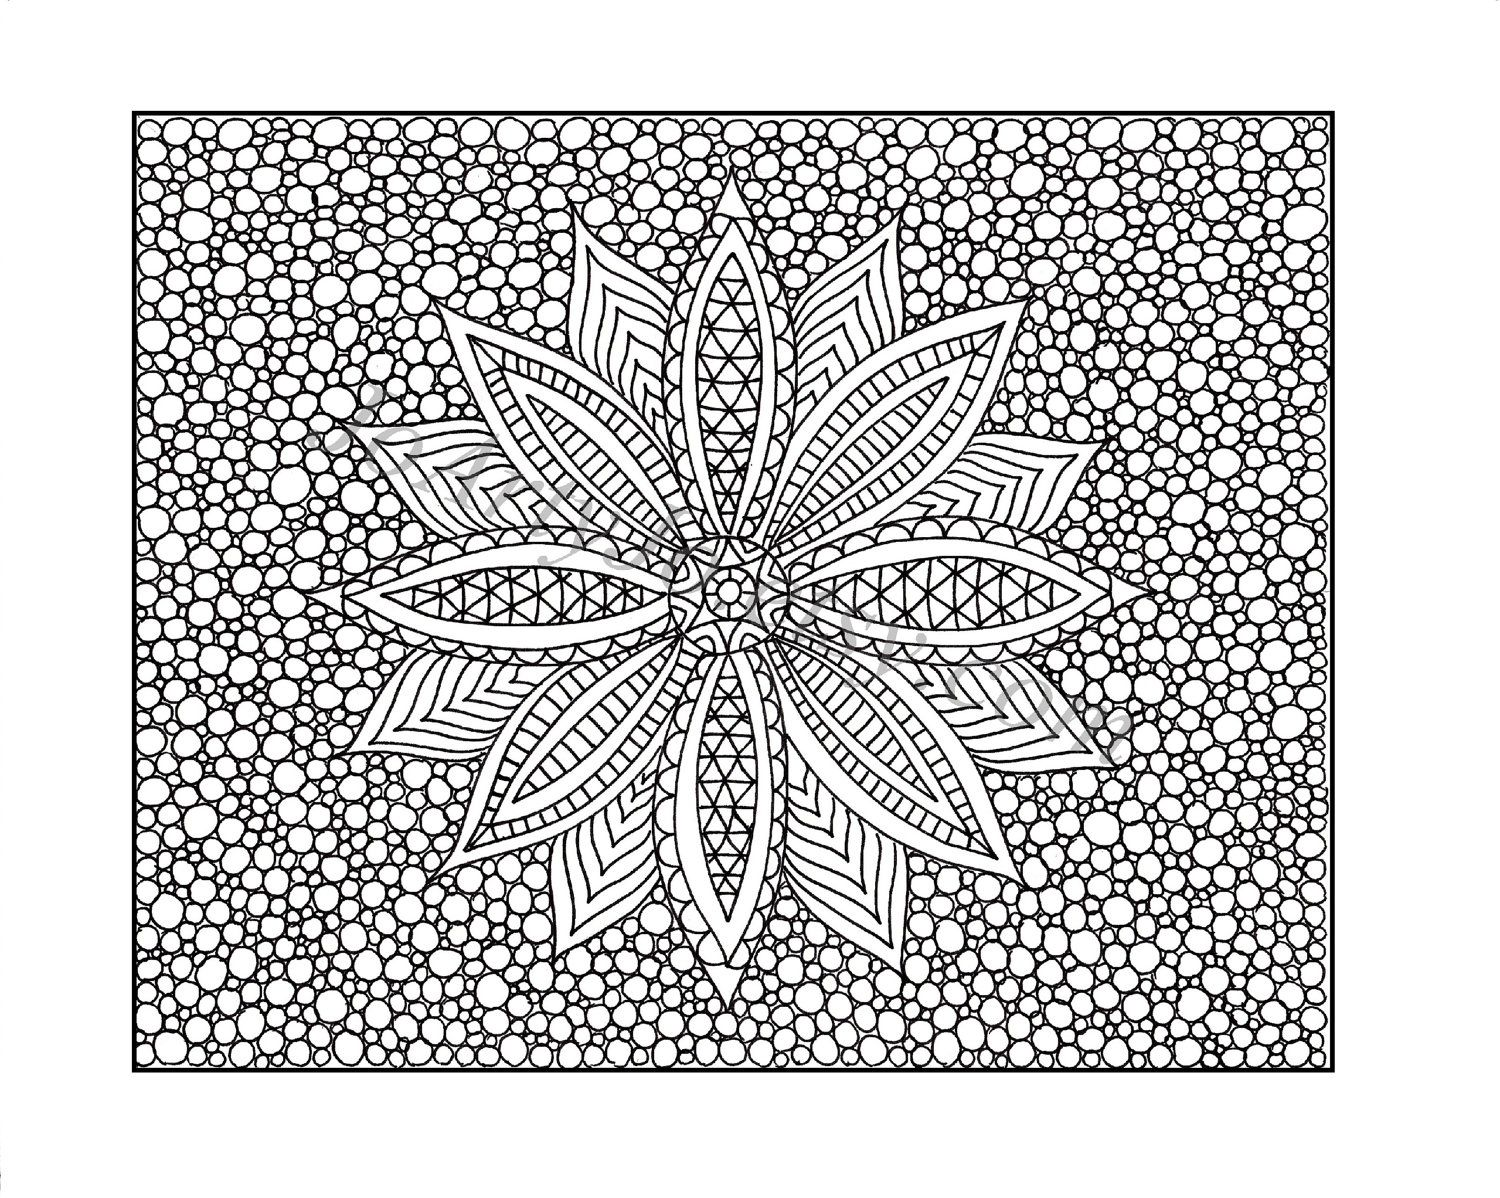 Free printable zentangle coloring pages for adults - Printable Adult Coloring Pages Coloring Page Printable Zentangle Inspired Pattern By Joartyjo On Coloring Pages Pinterest Zentangle Adult